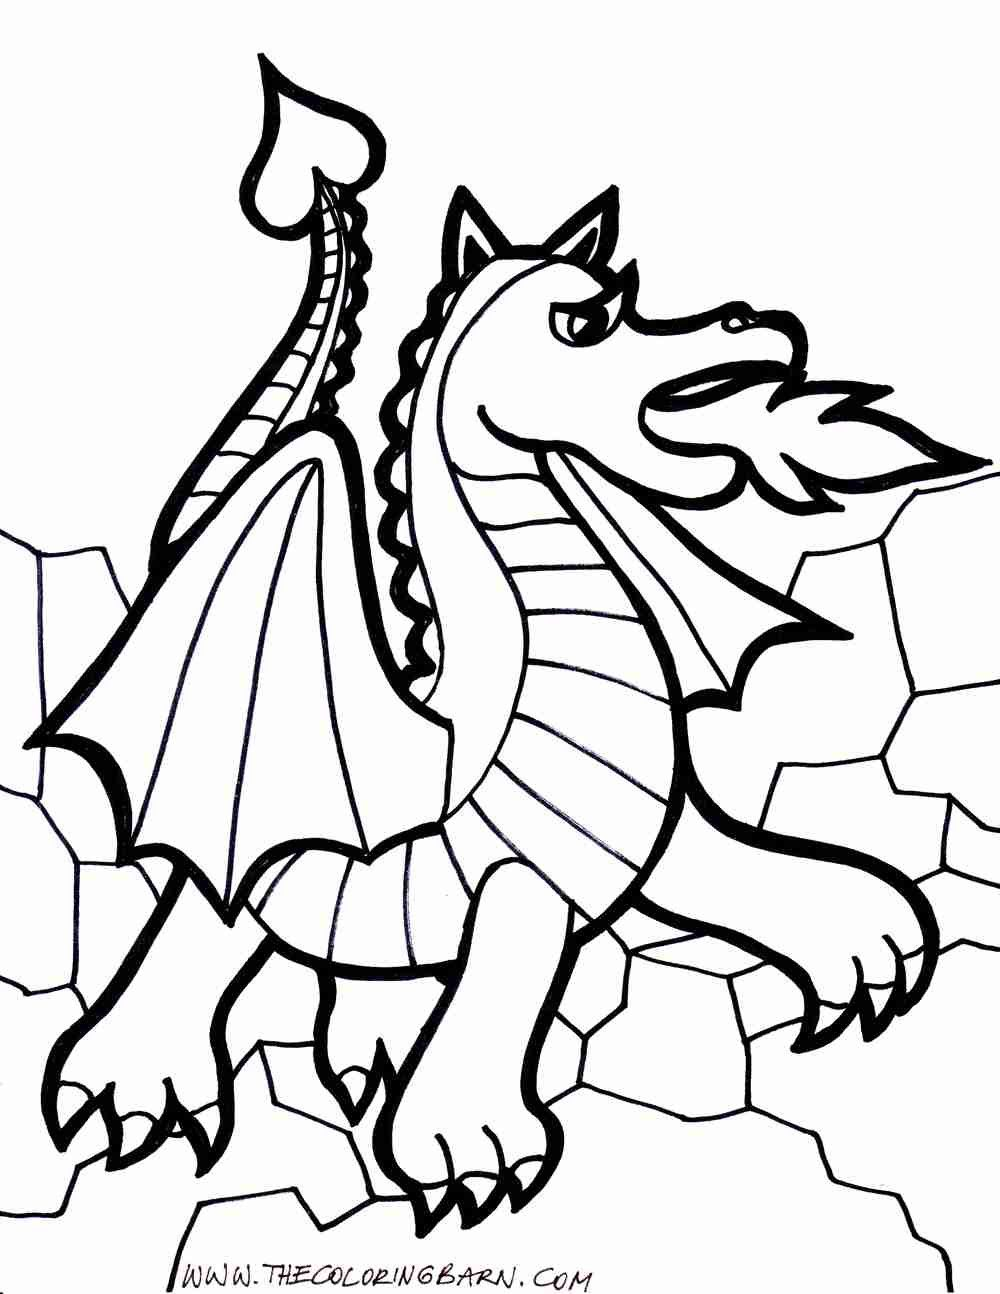 Ender Dragon Coloring Page Youngandtae Com Dragon Images Realistic Dragon Dragon Pictures